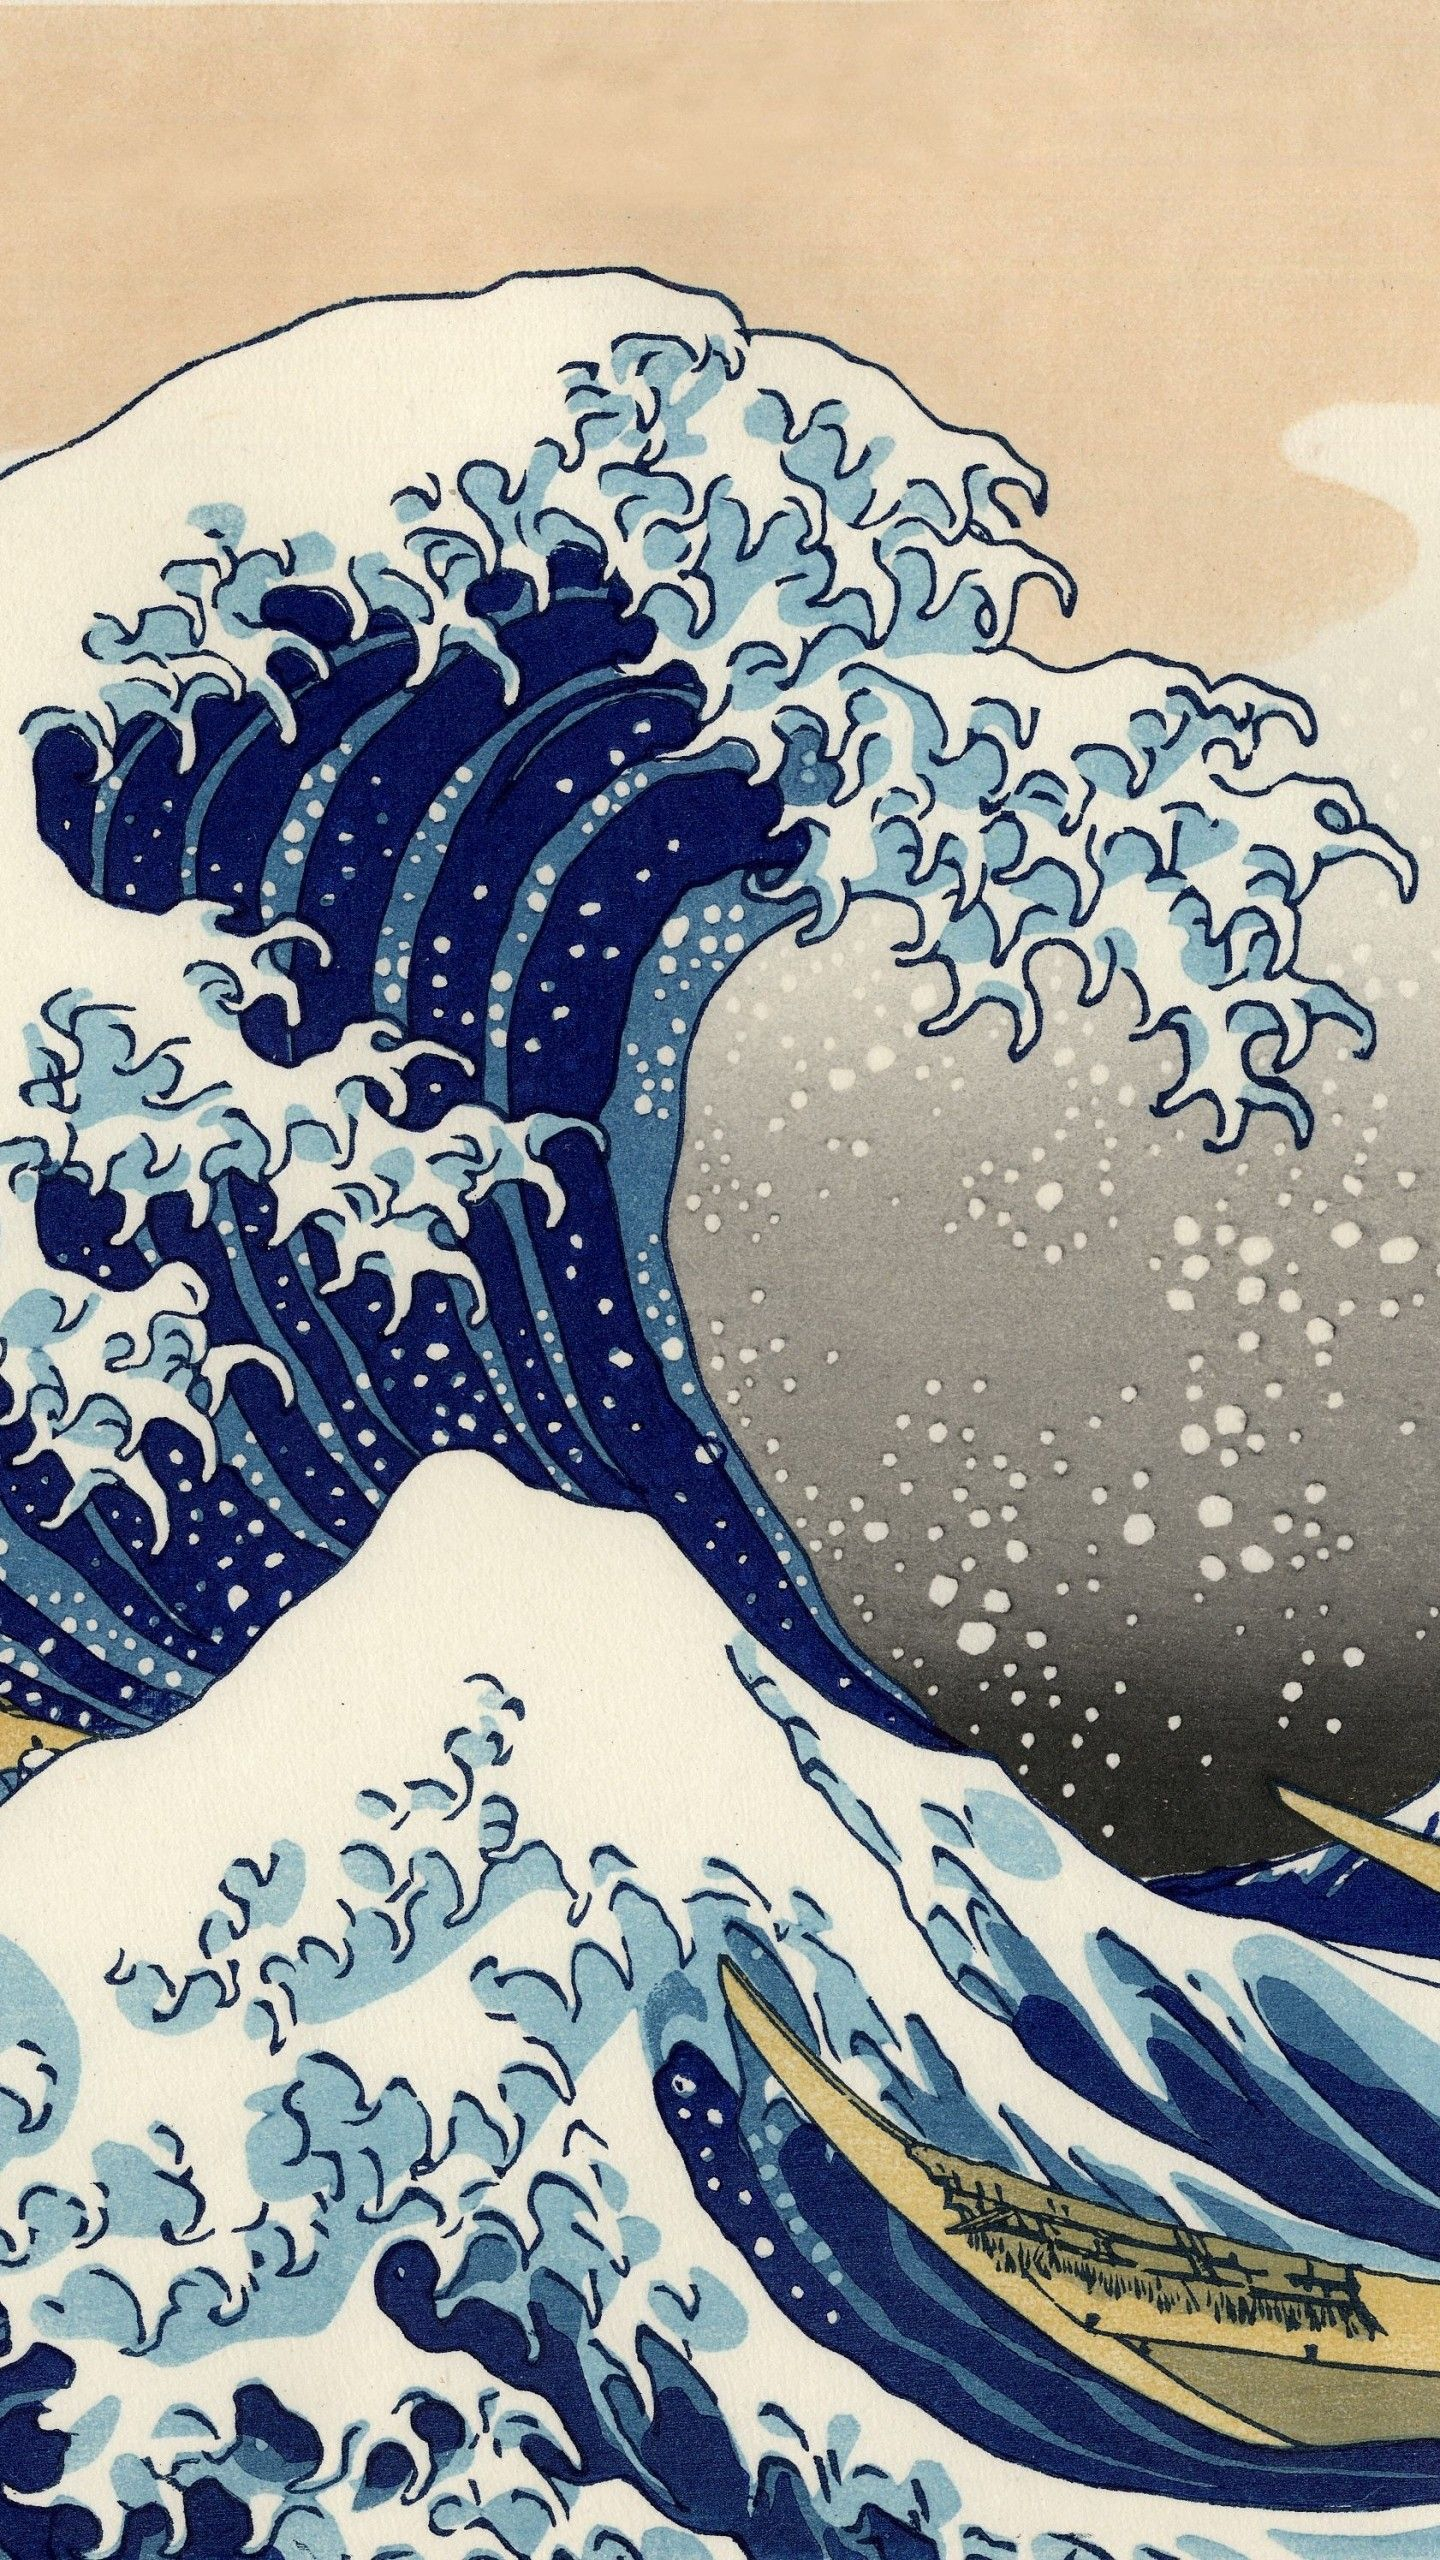 56 Japanese Wave Wallpapers On Wallpaperplay Art Wallpaper Iphone Art Wallpaper Waves Wallpaper